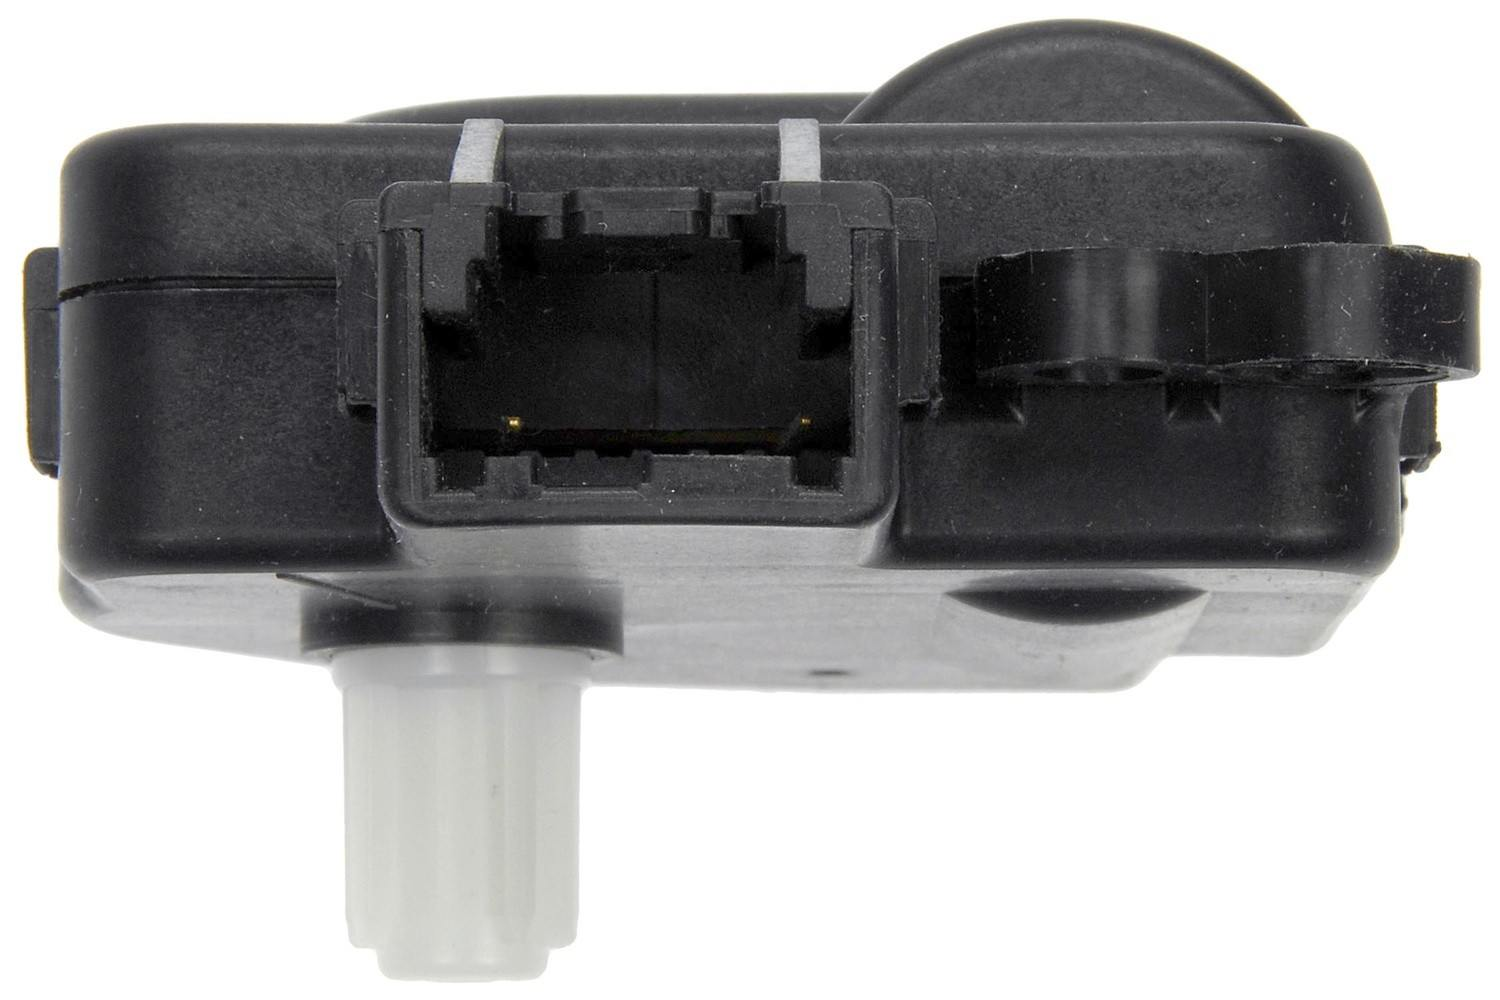 DORMAN OE SOLUTIONS - HVAC Heater Blend Door Actuator - DRE 604-038